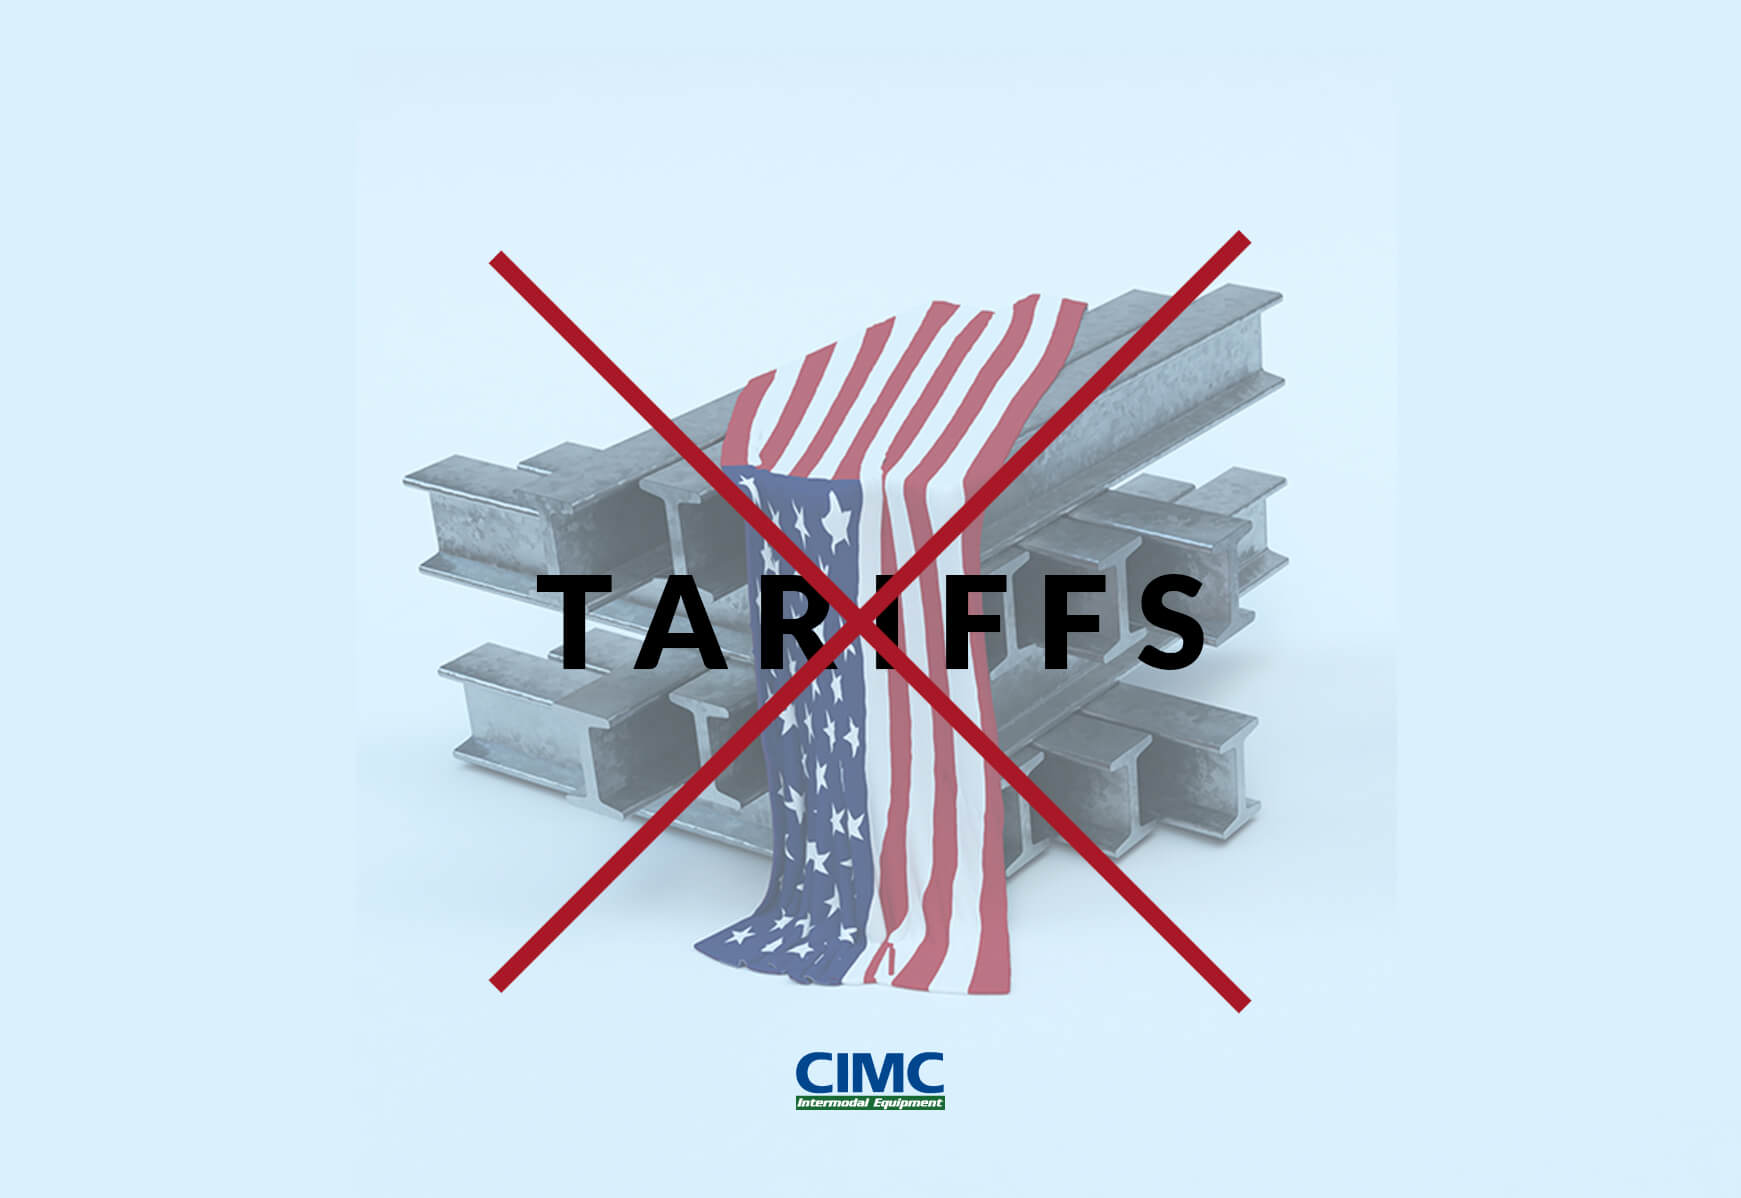 CIE Manufacturing Says No to Chassis Tariffs